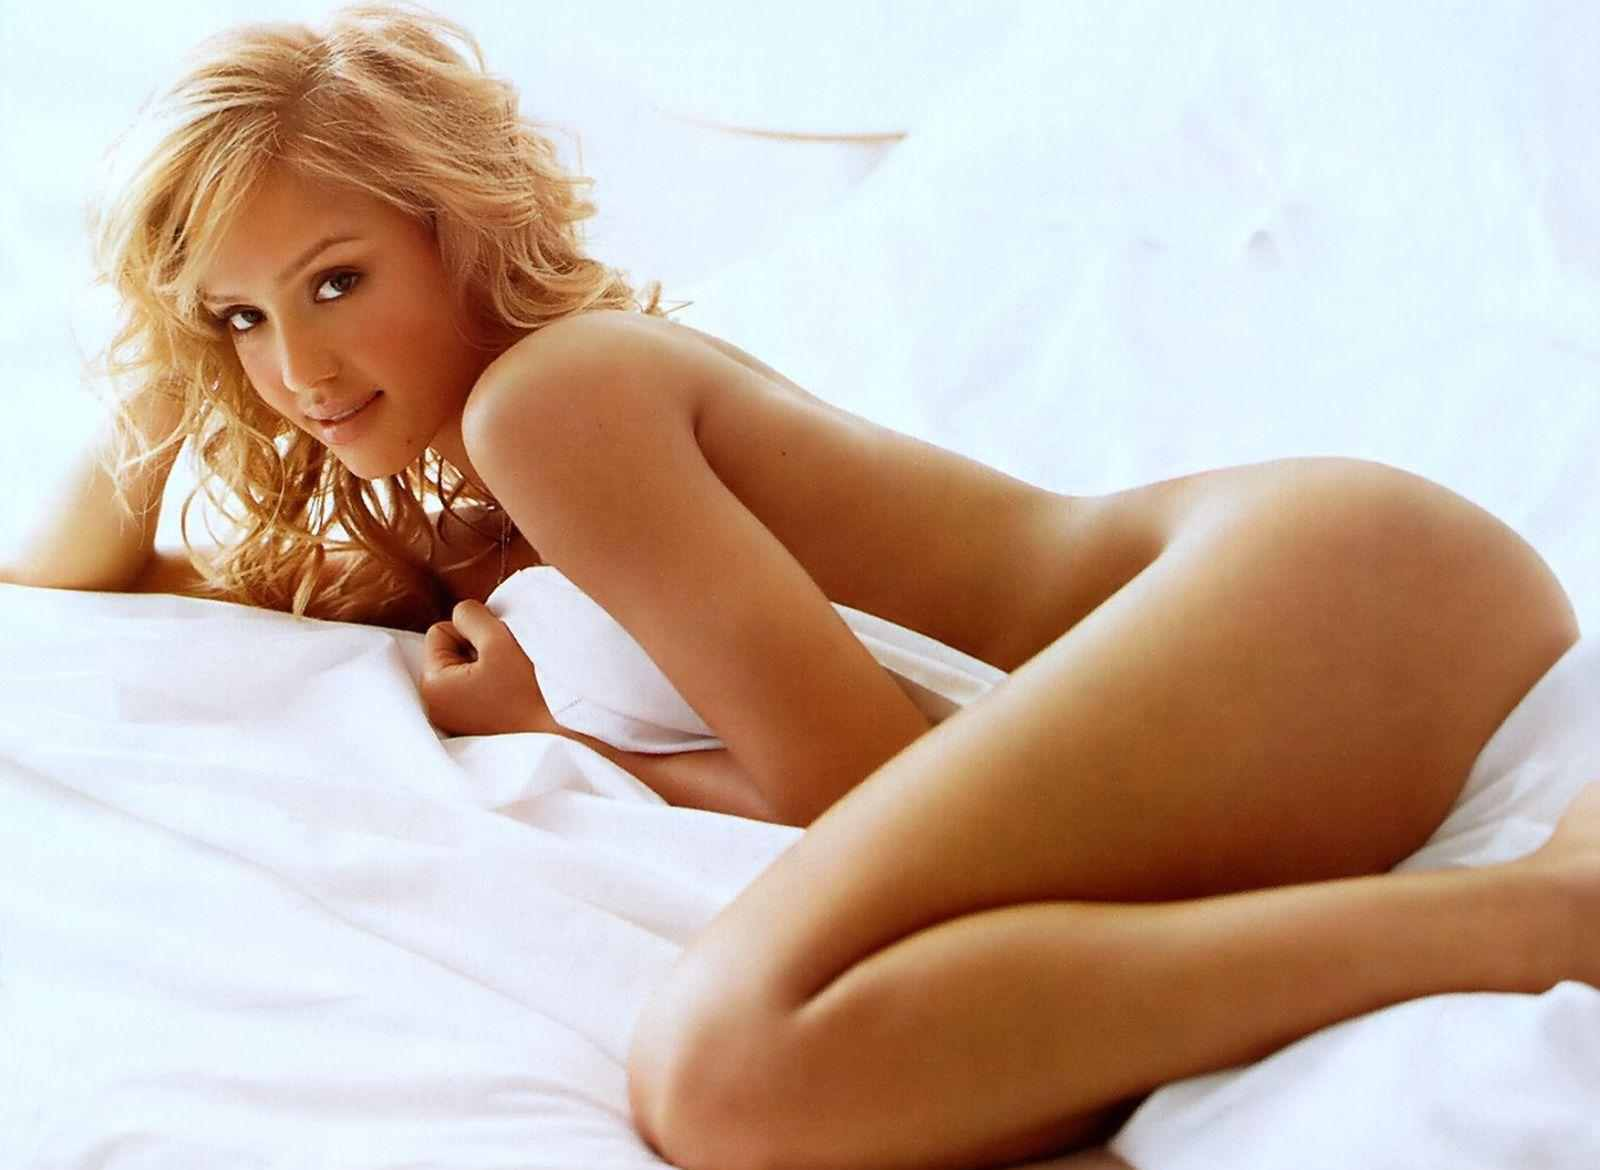 girls with perfect arses nude